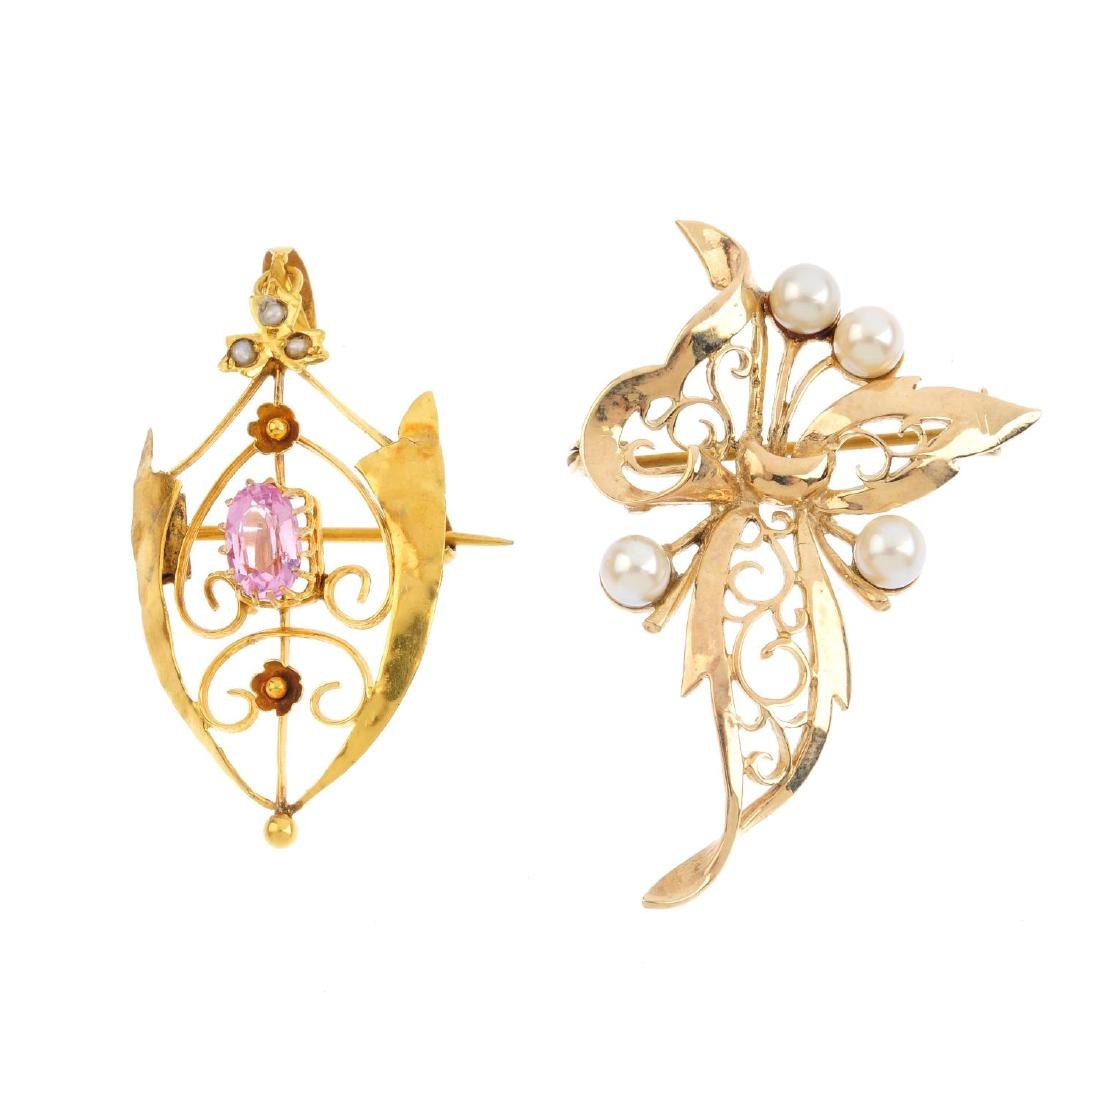 Two gold and gem-set brooches. To include an Edwardian